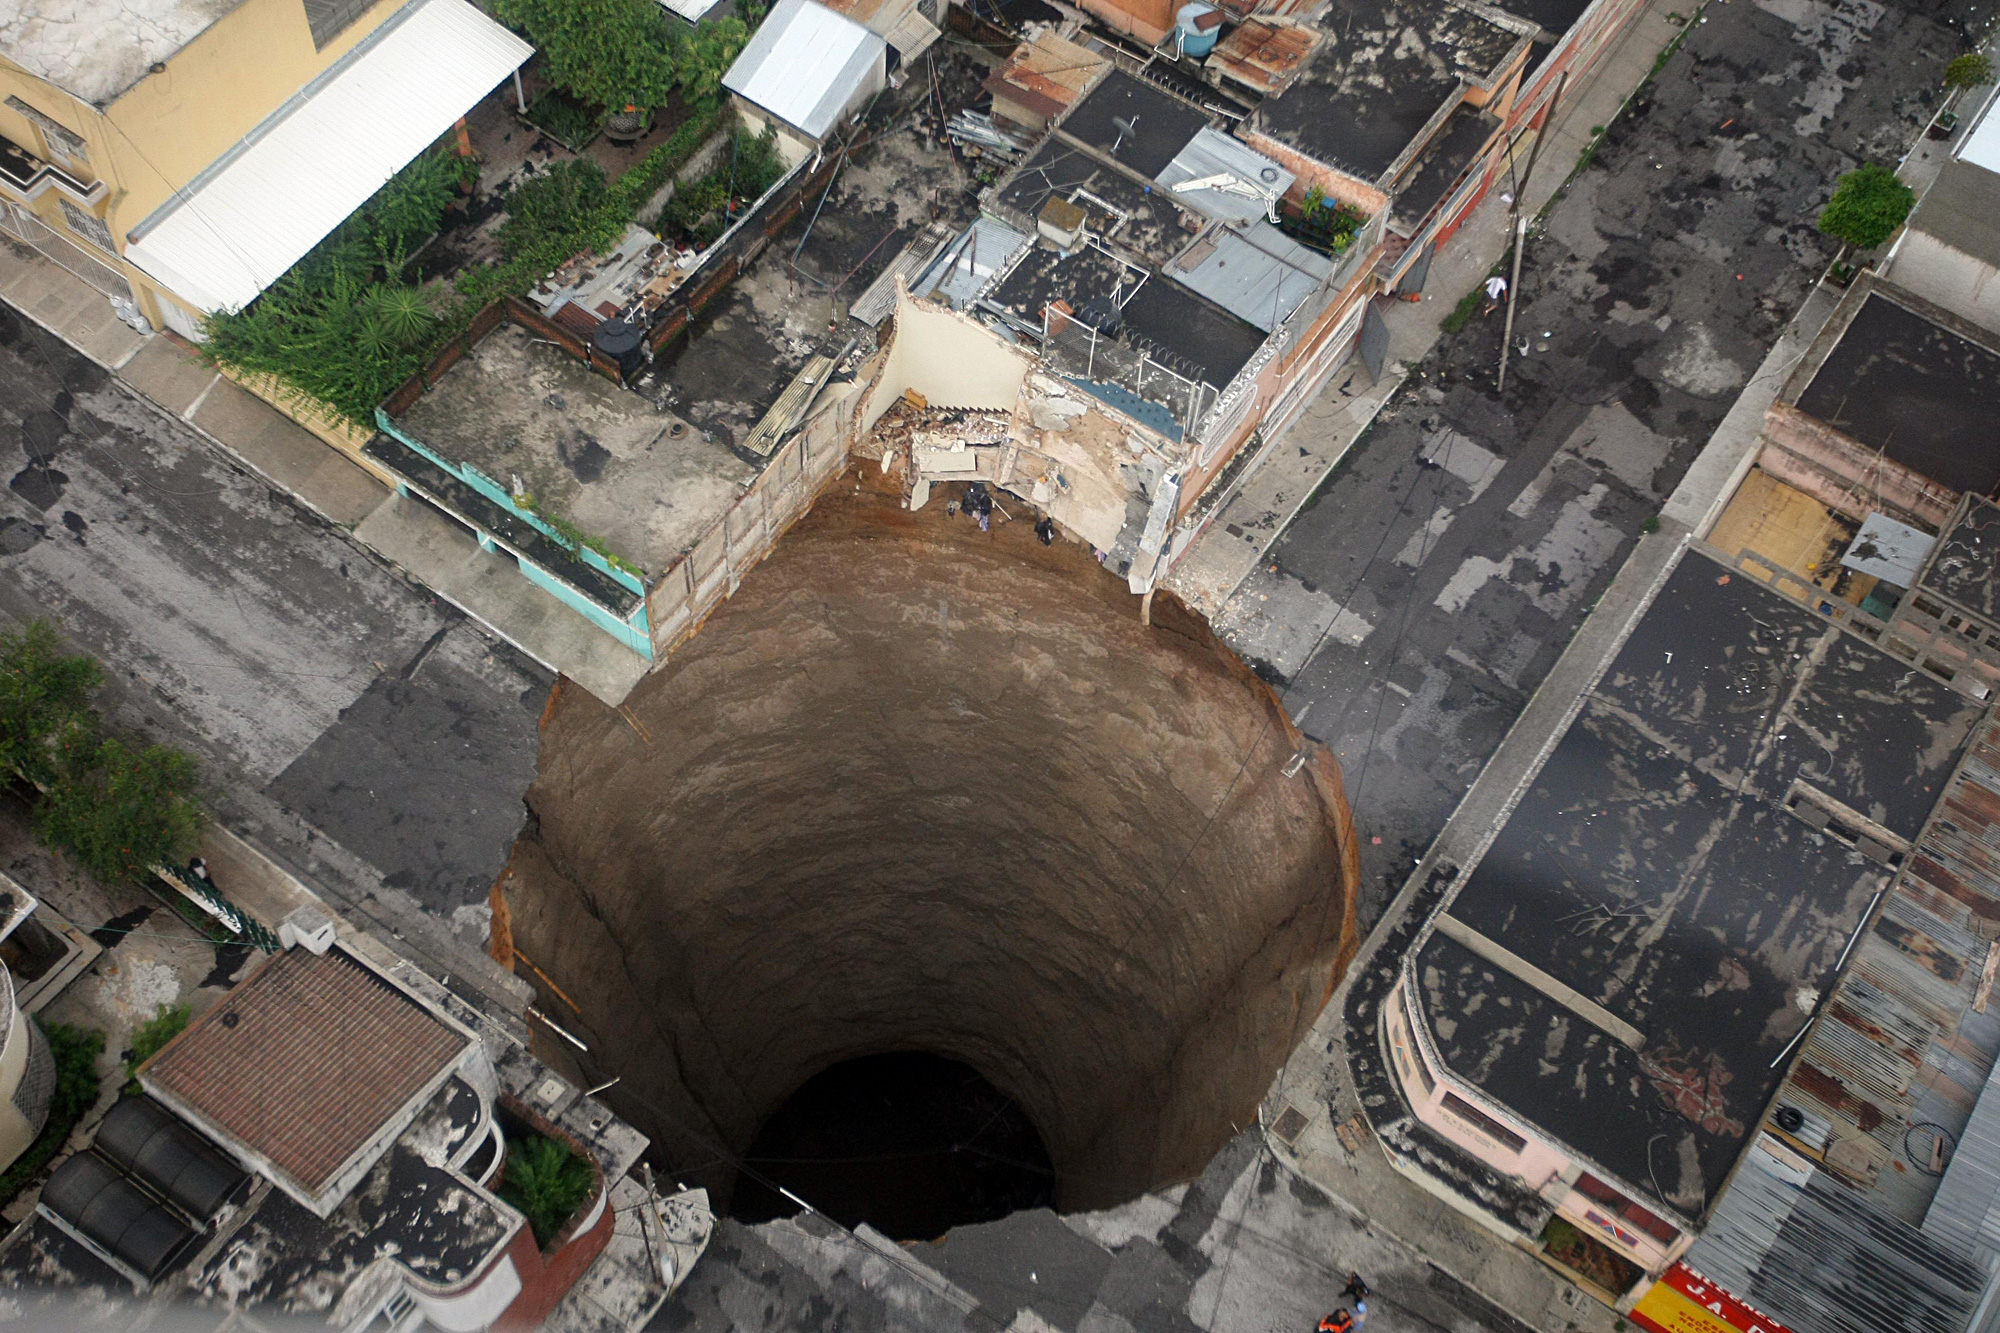 Then I checked the source: The Guatemalan government. This sinkhole appeared last sunday in a street intersection of Ciudad de Guatemala.